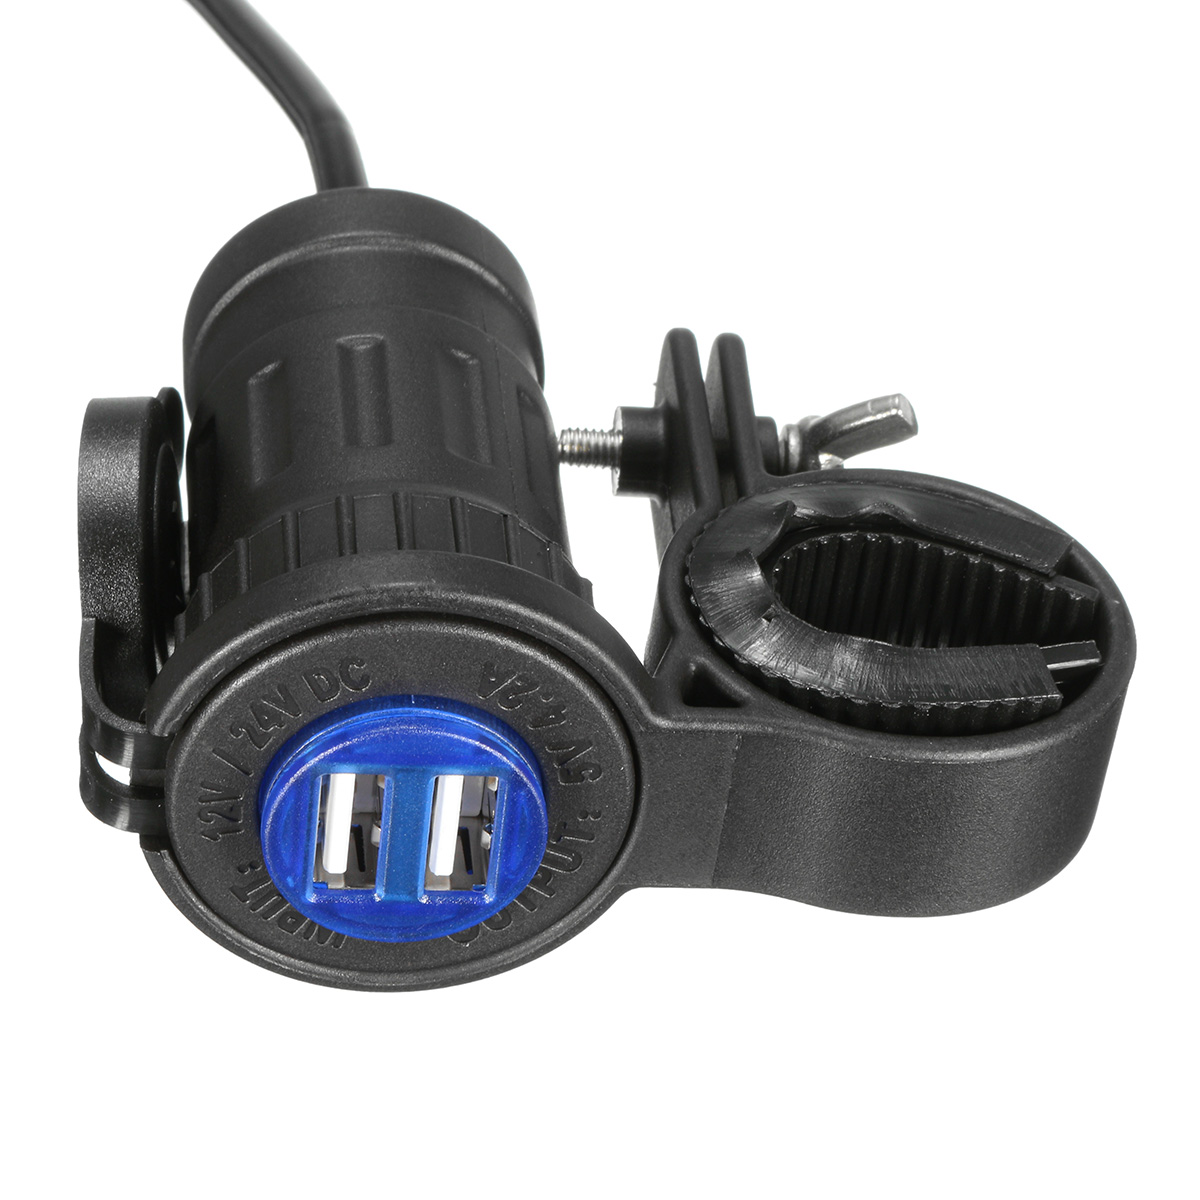 12-24V 4.2A Motorcycle Dual USB Charger Plug Socket For BMW/Truck/Triumph/Ducati/Hella